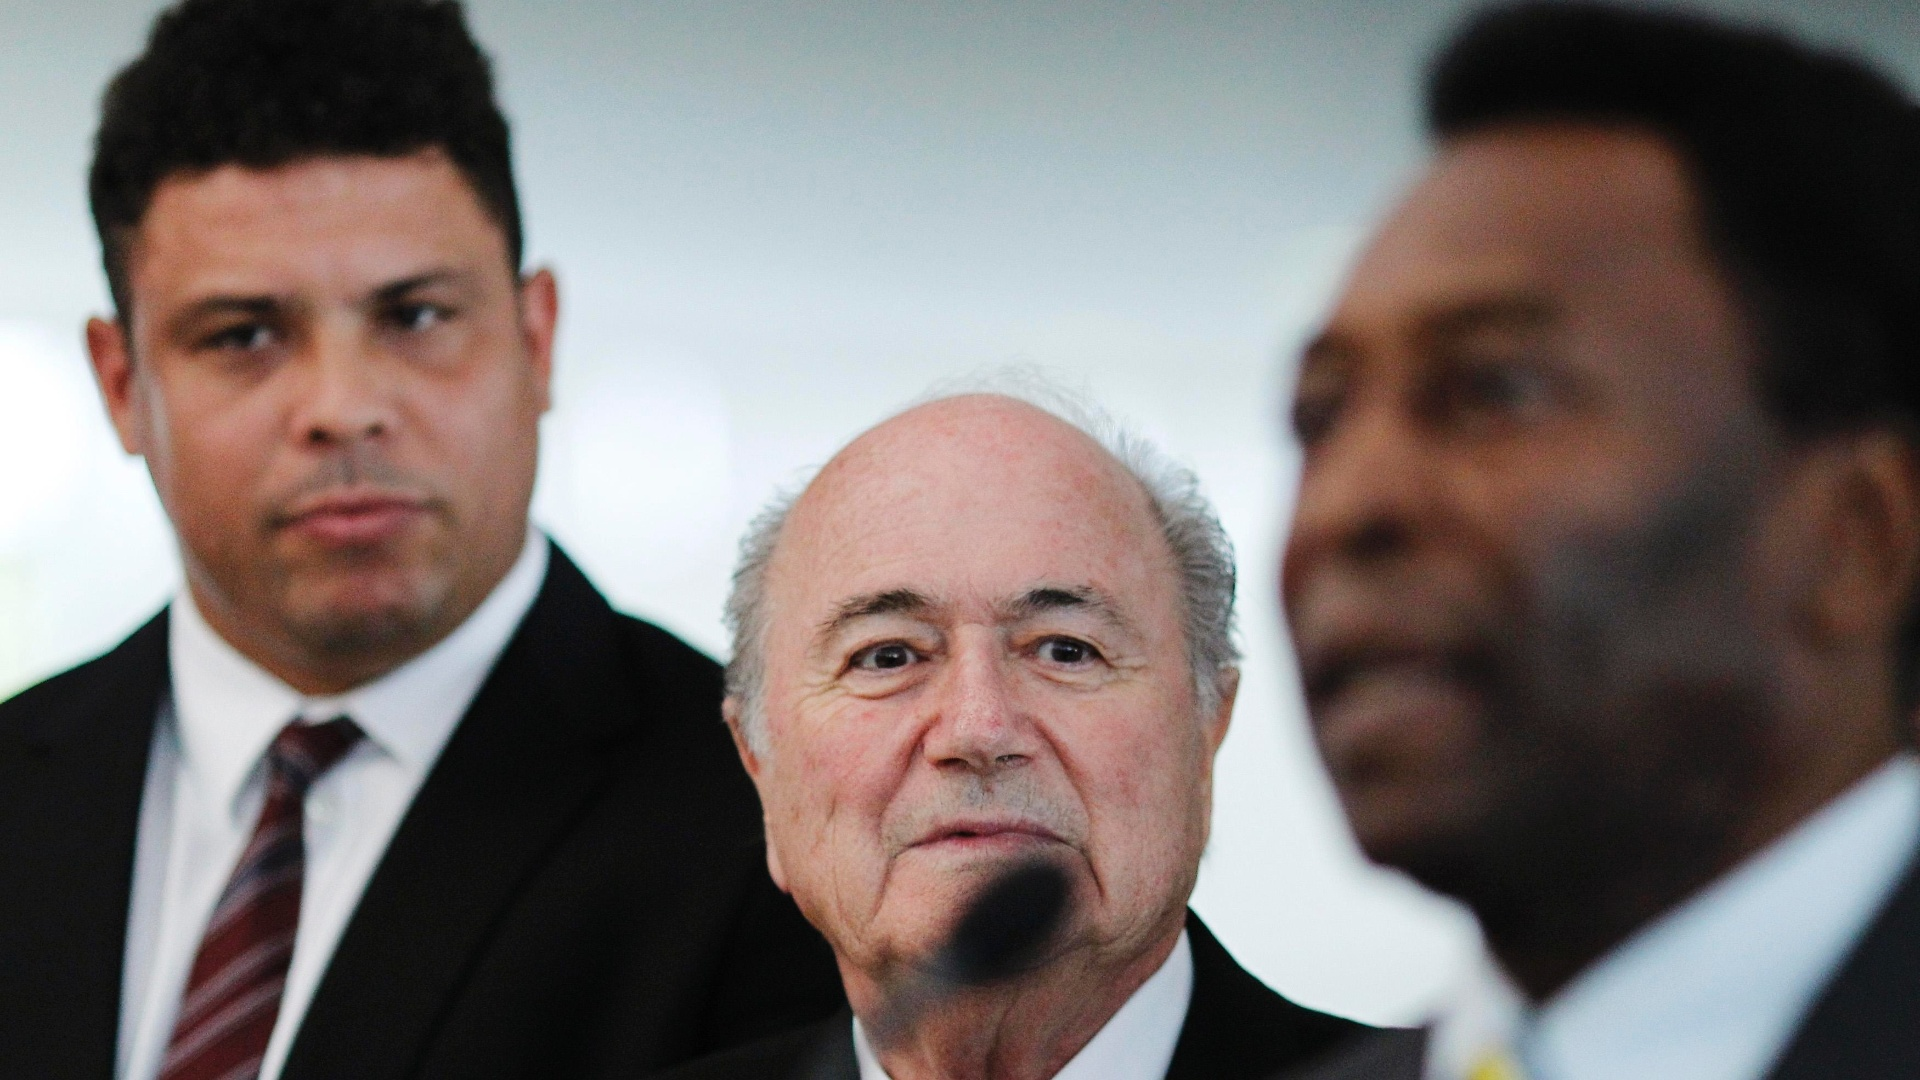 Ronaldo observa Joseph Blatter e Pel em conversa com a imprensa aps uma reunio em Braslia